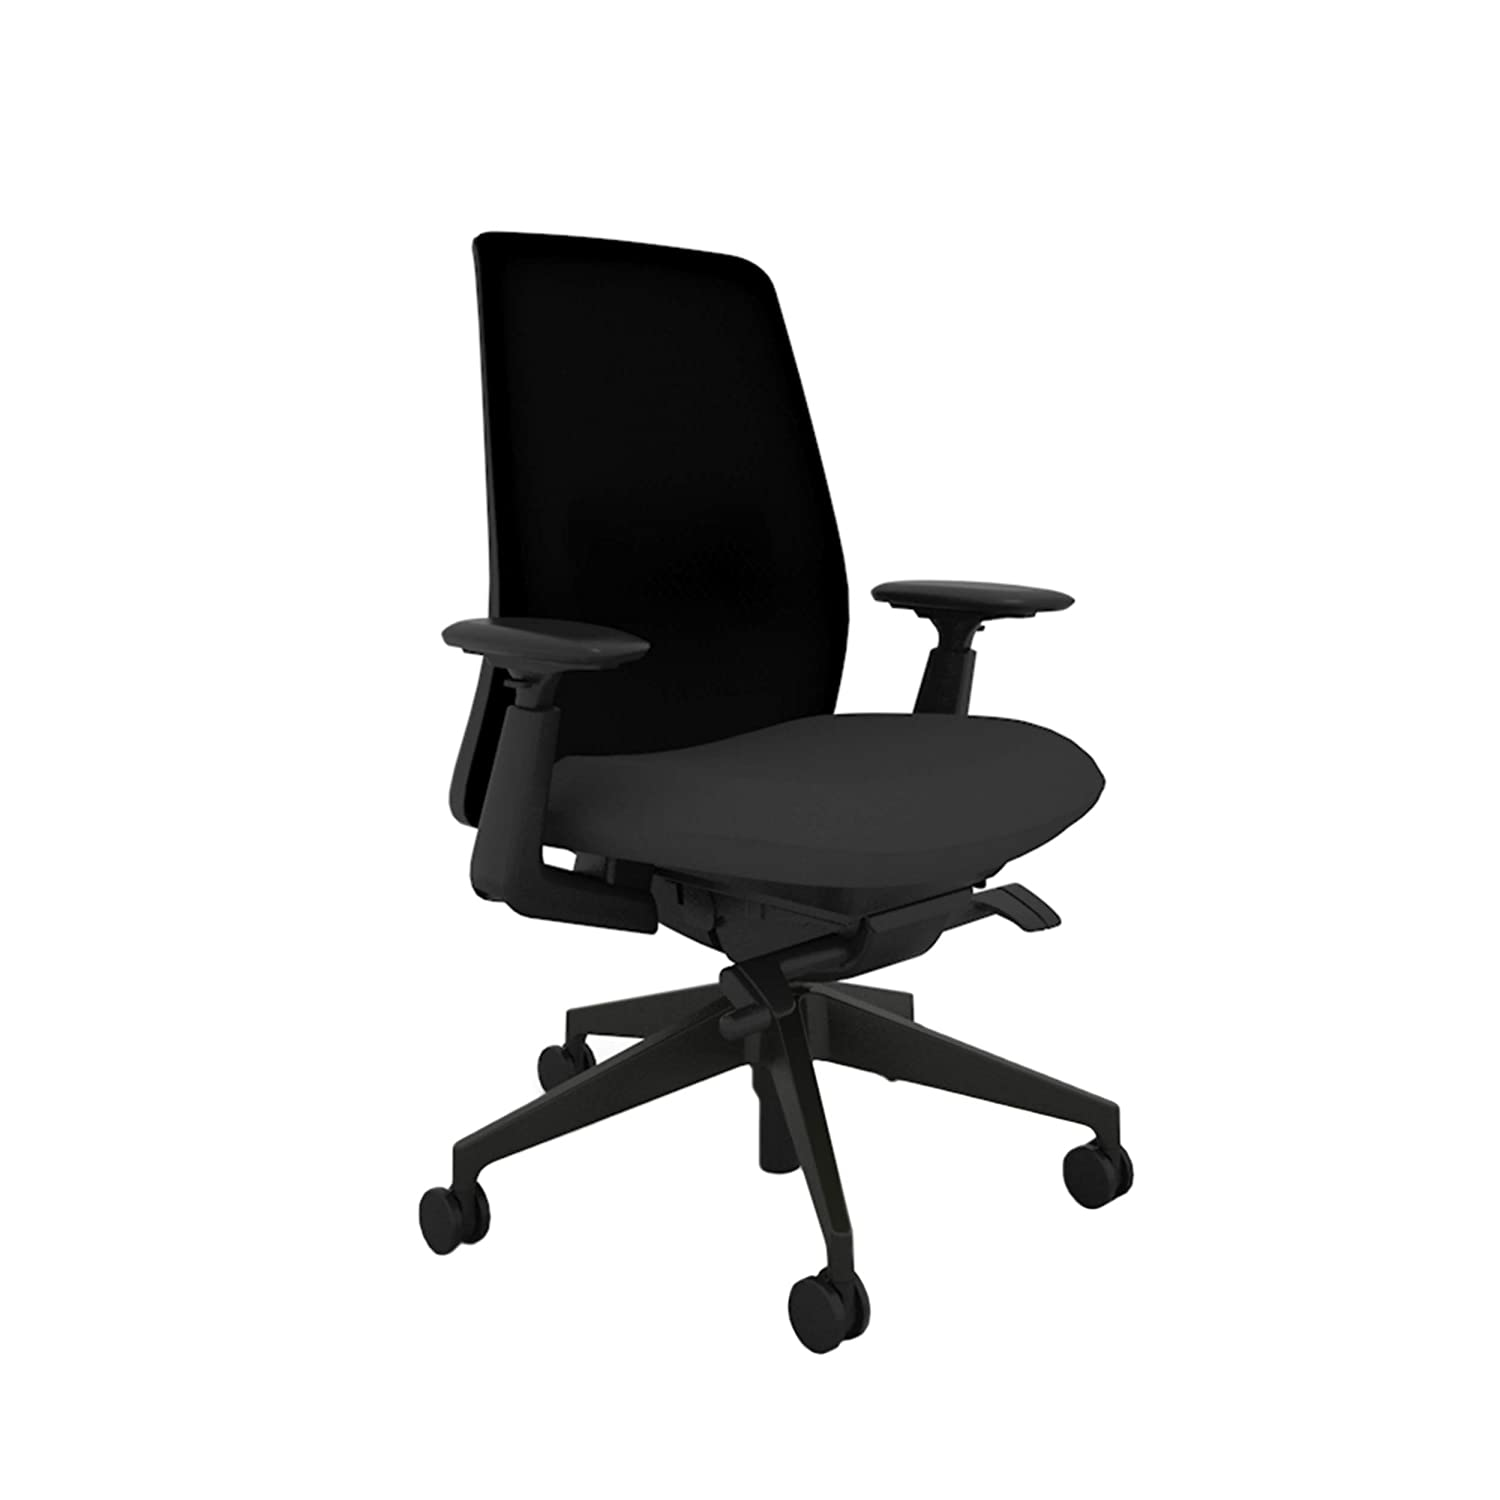 Haworth Soji Office Chair with Ergonomic Adjustments and Flexible Mesh Back, Carbon